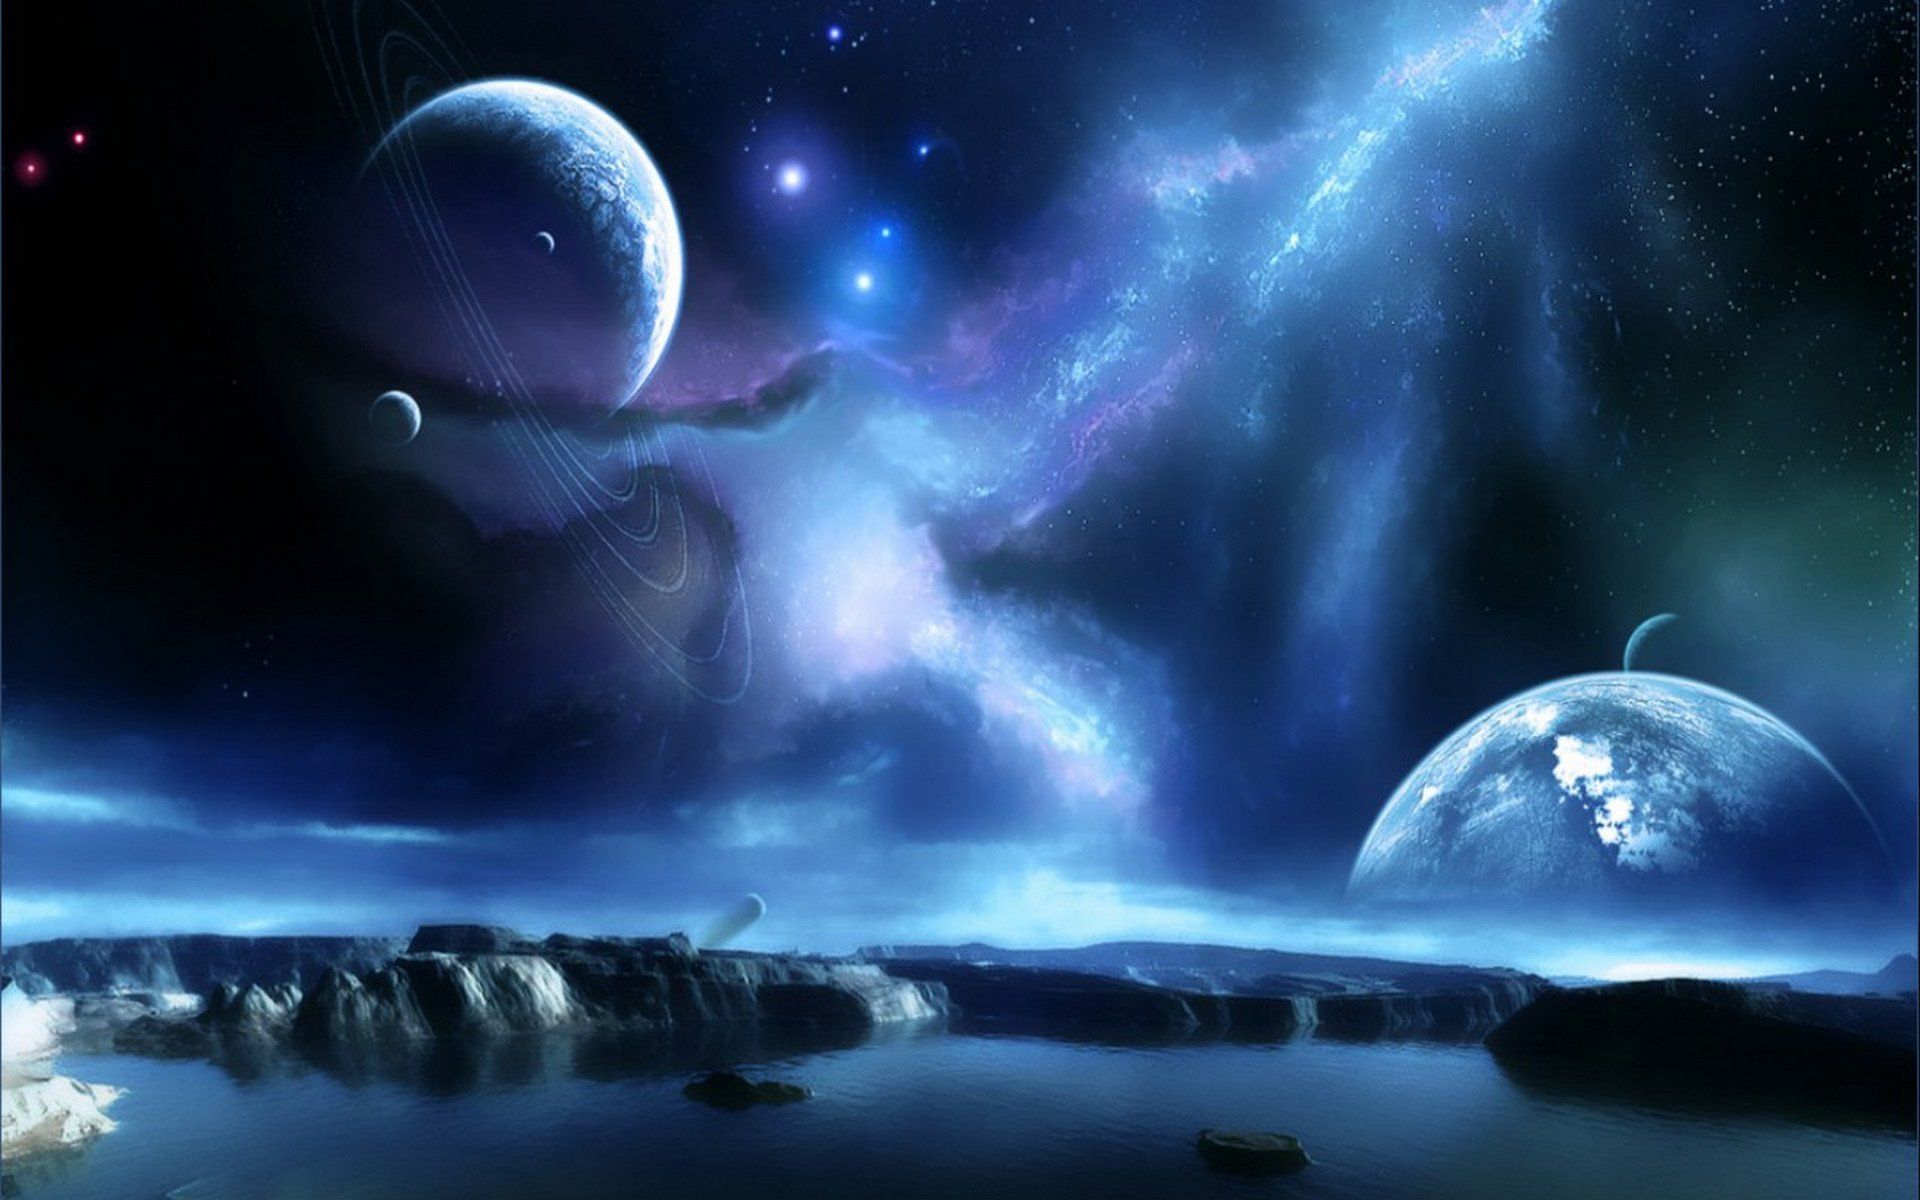 Space Wallpapers High Resolution: Planet Rise Full HD Wallpaper And Background Image